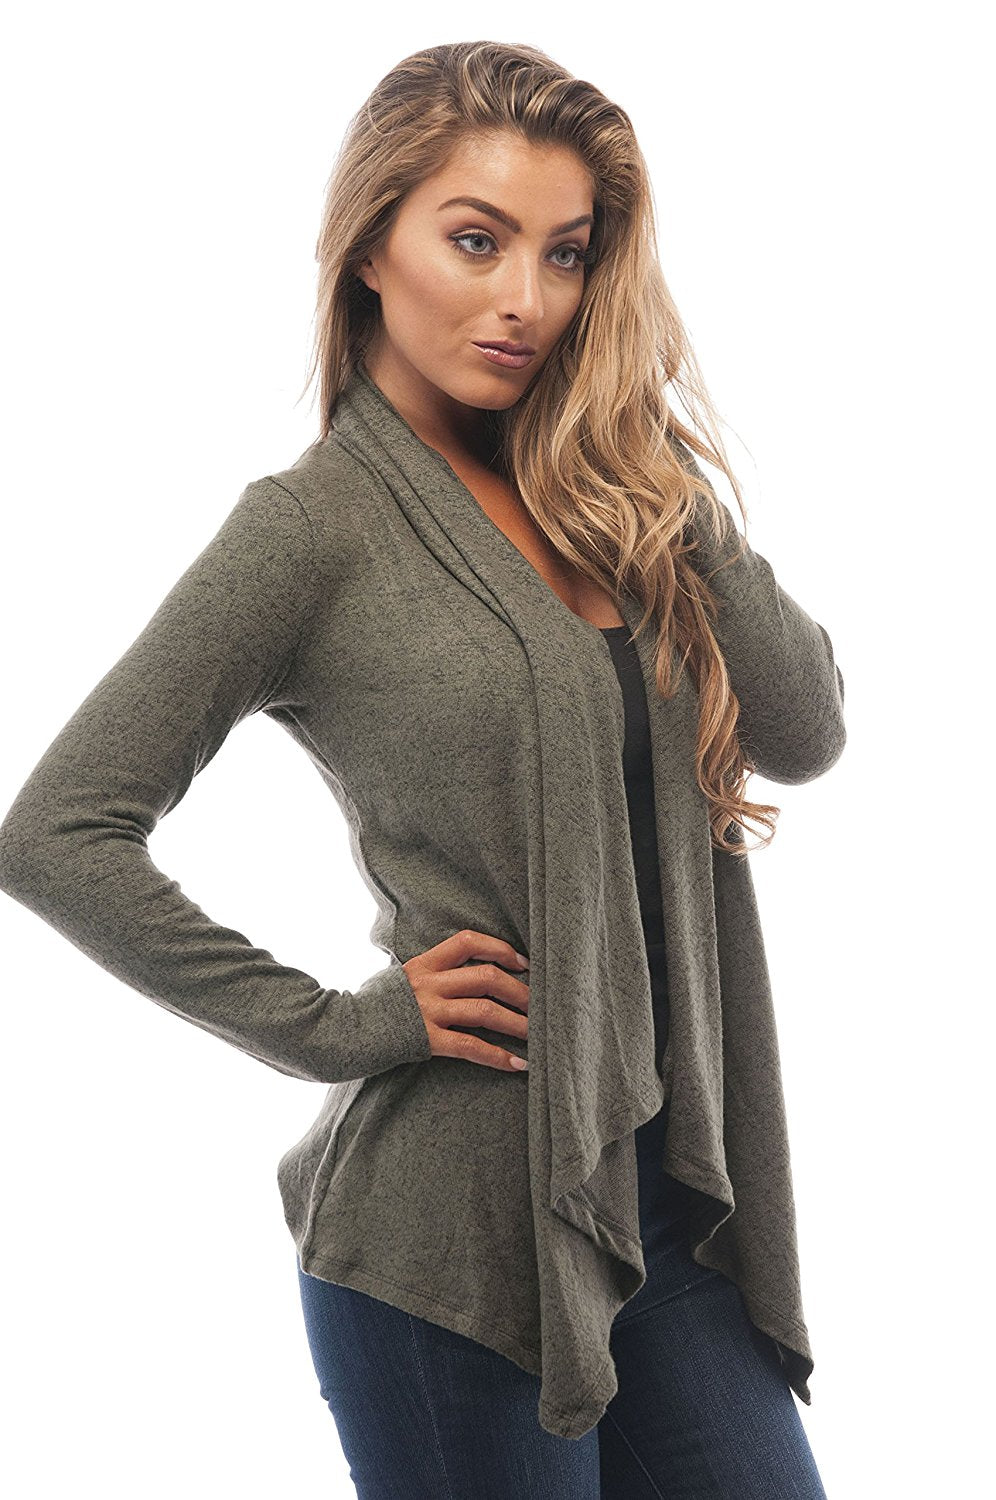 Hollywood Star Fashion Brushed Fabric Light Weight Cardigan